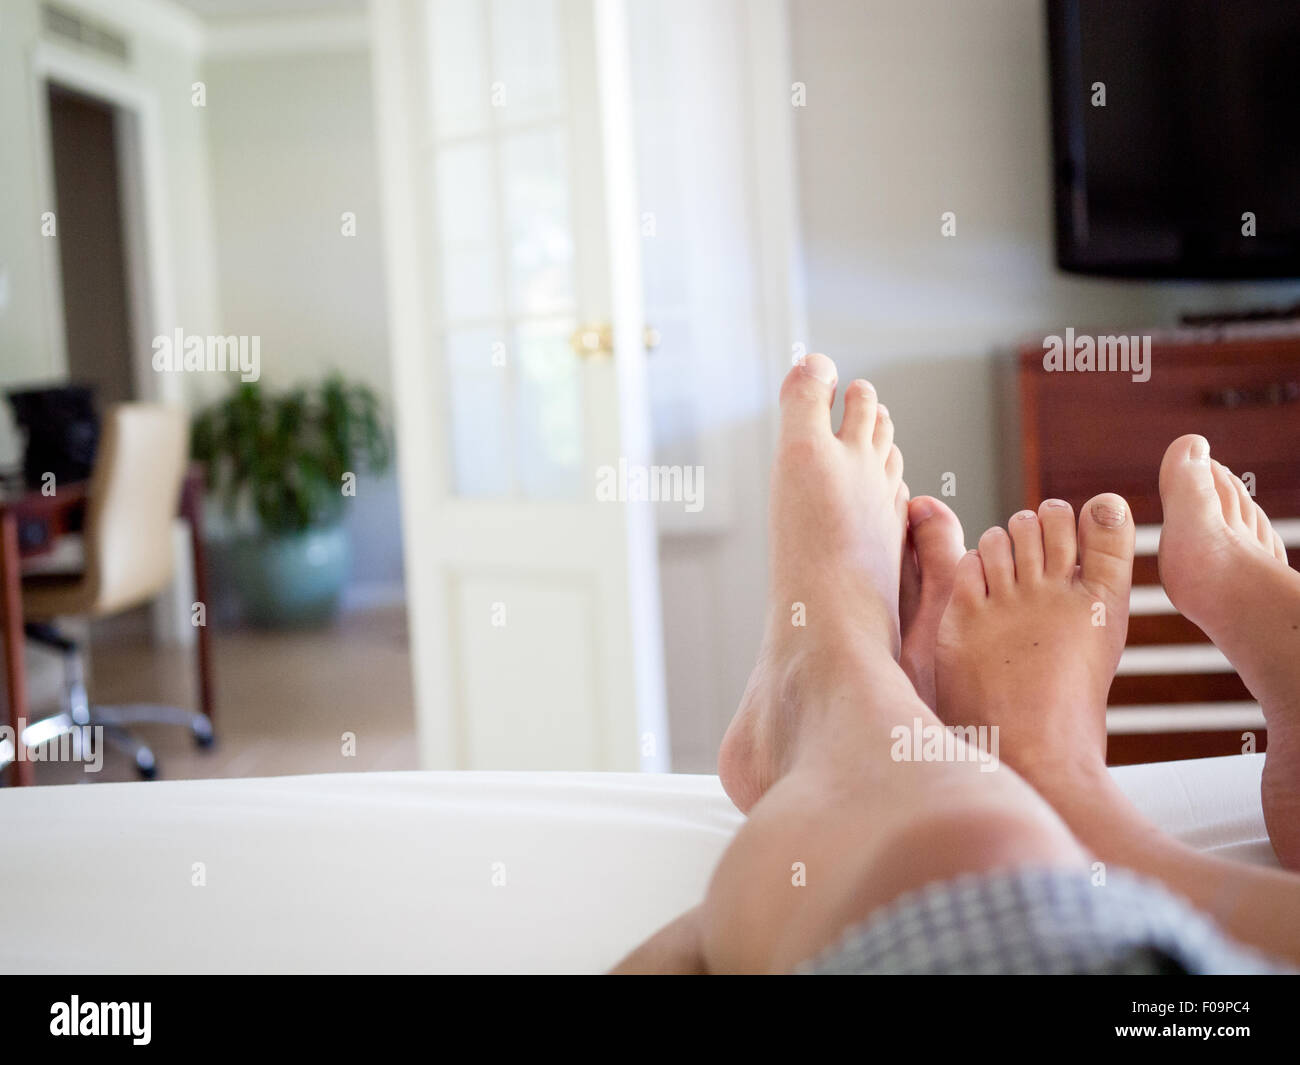 the feet of a man and woman in bed in a hotel room suite at the